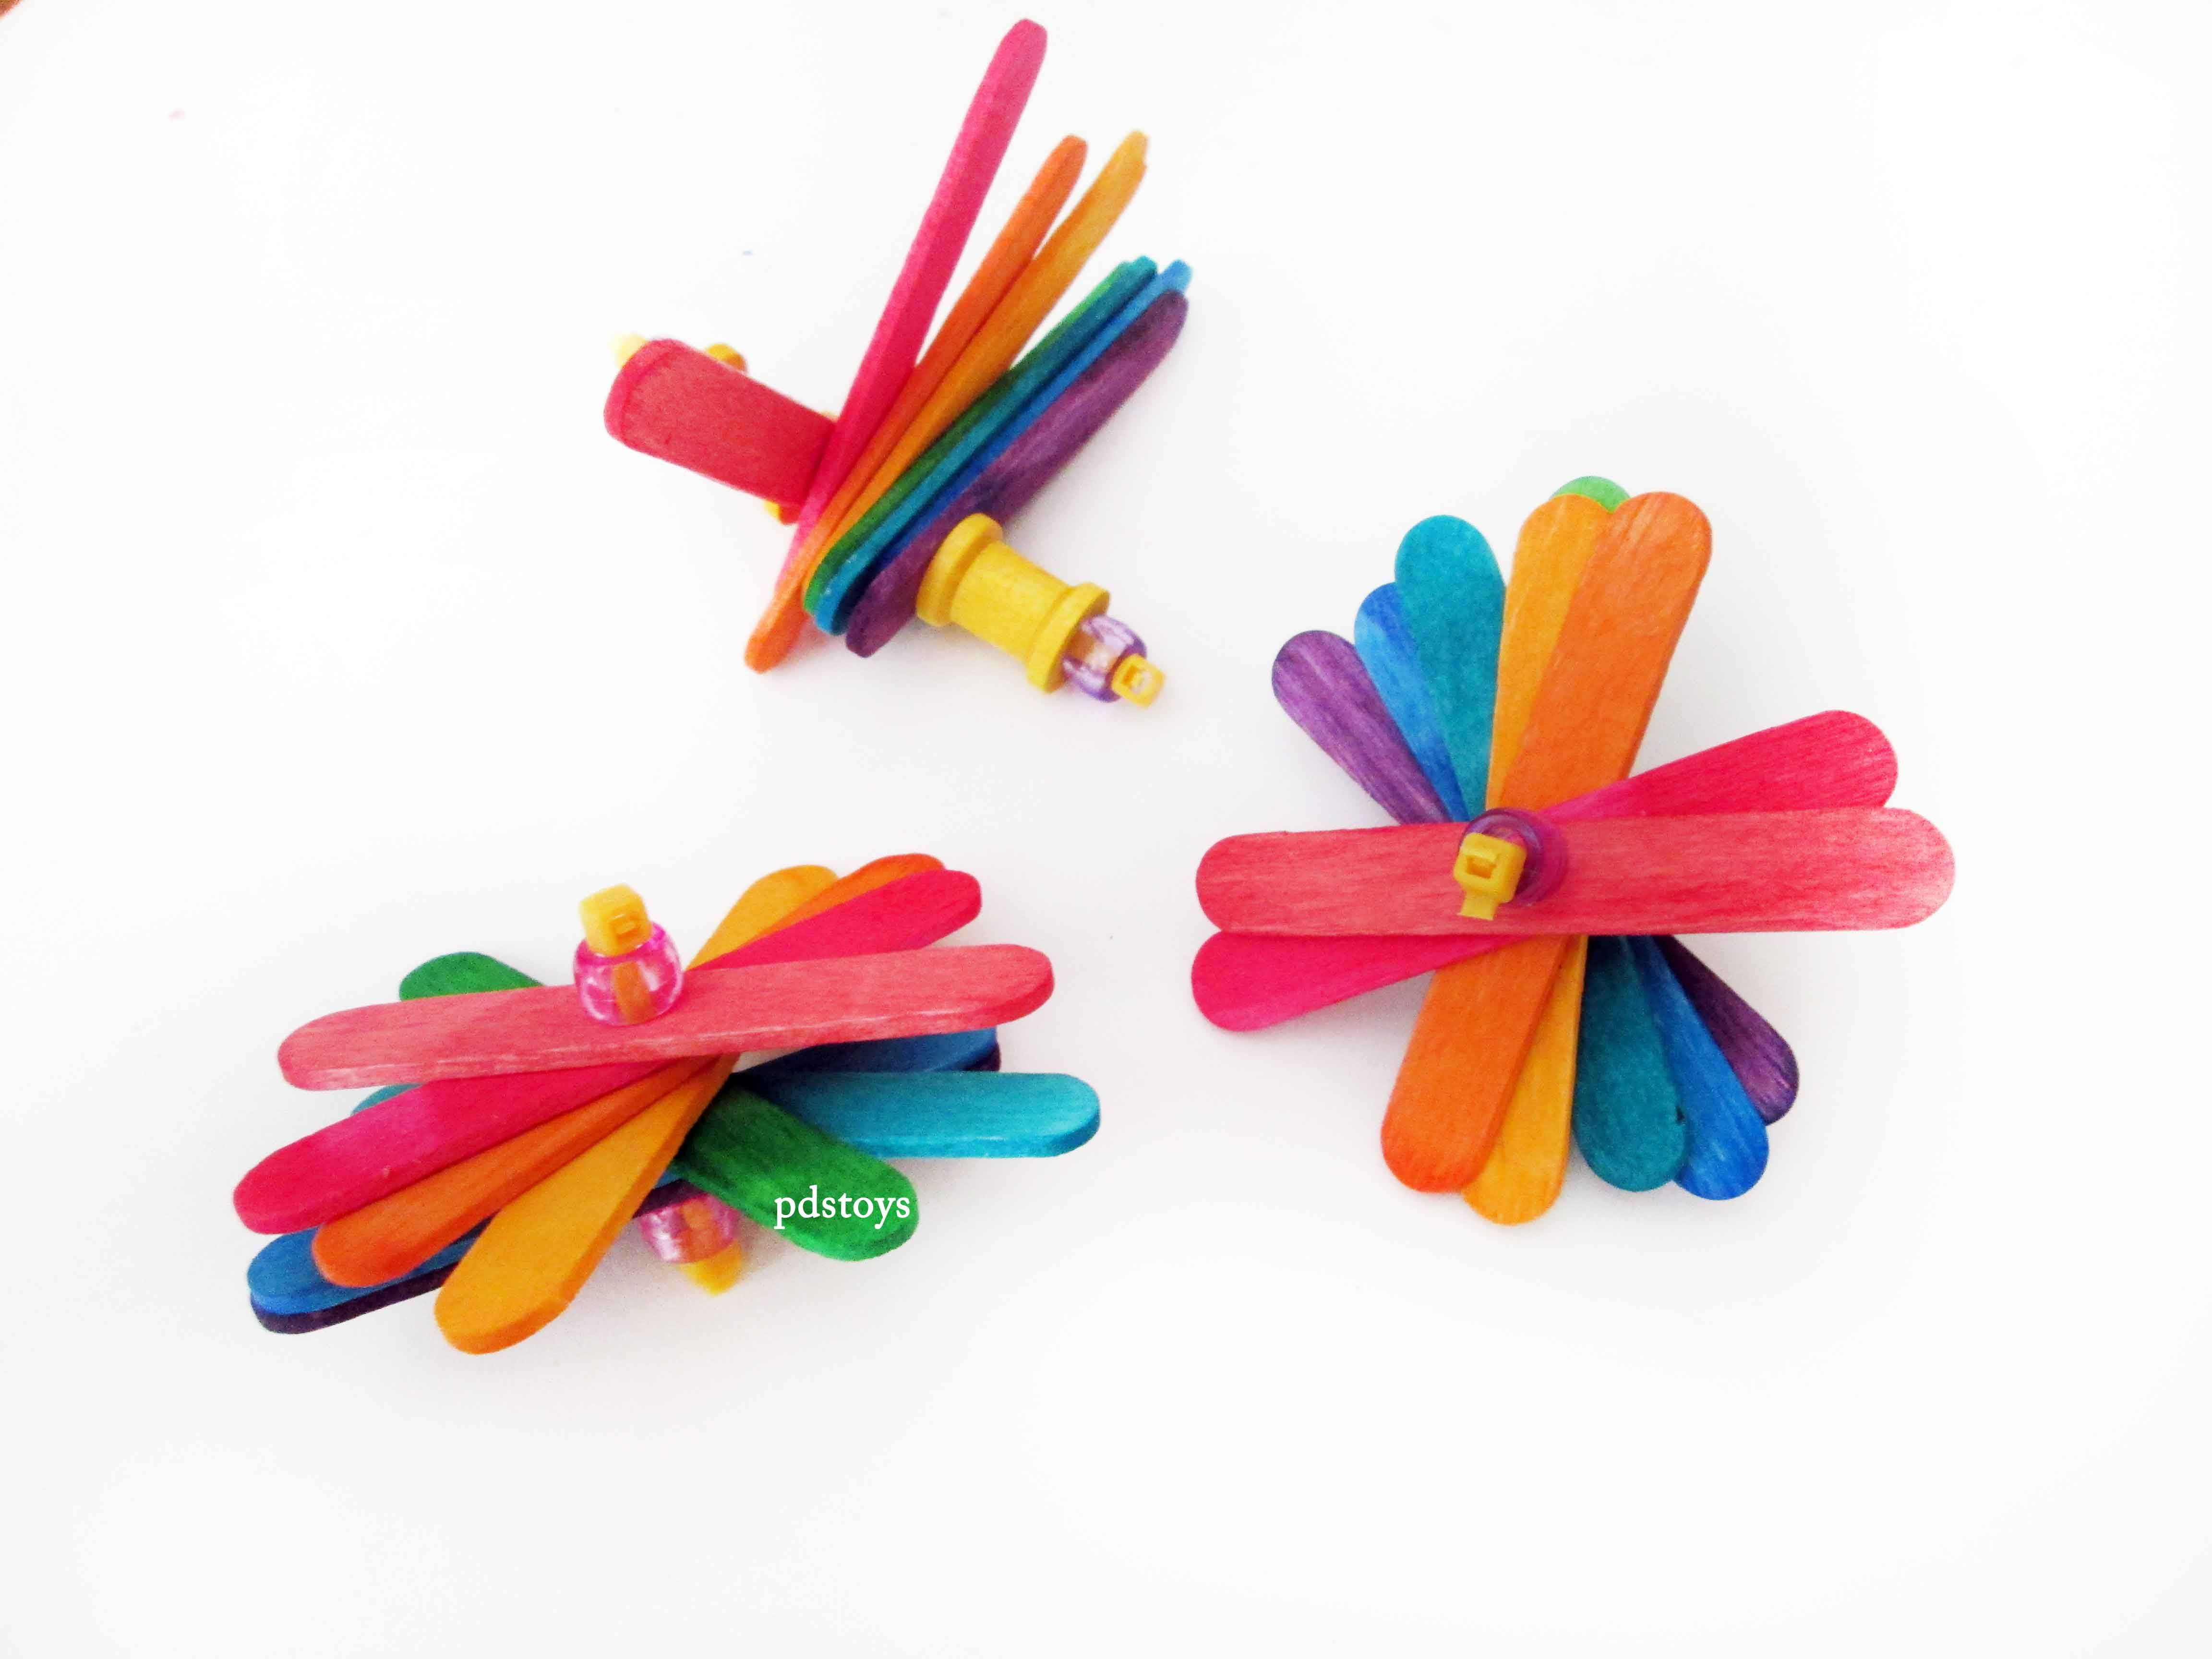 Pack of 6 Popsicle Sticks Parrot Foot Toys